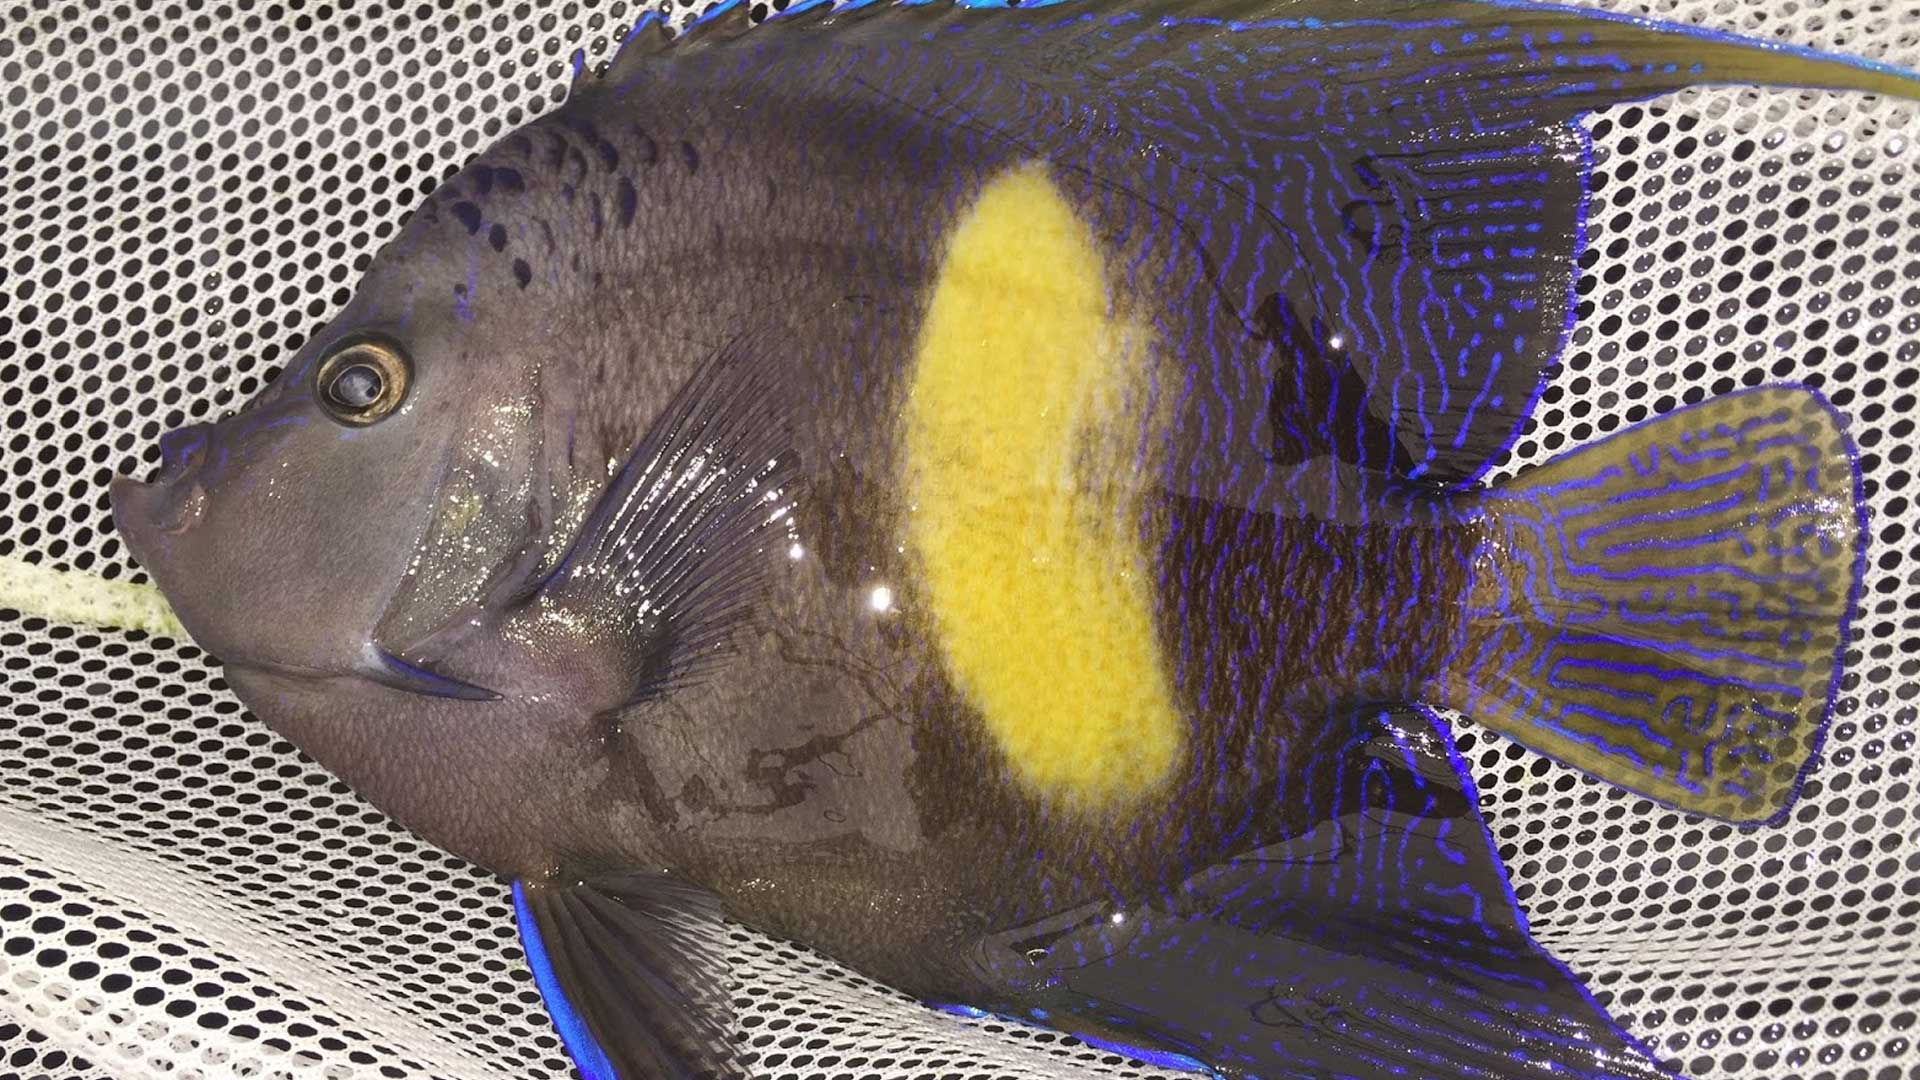 Figure 7.  Angelfish (~3 years old) kept at UF's Tropical Aquaculture Lab. Photo credit: Kevin Barden.